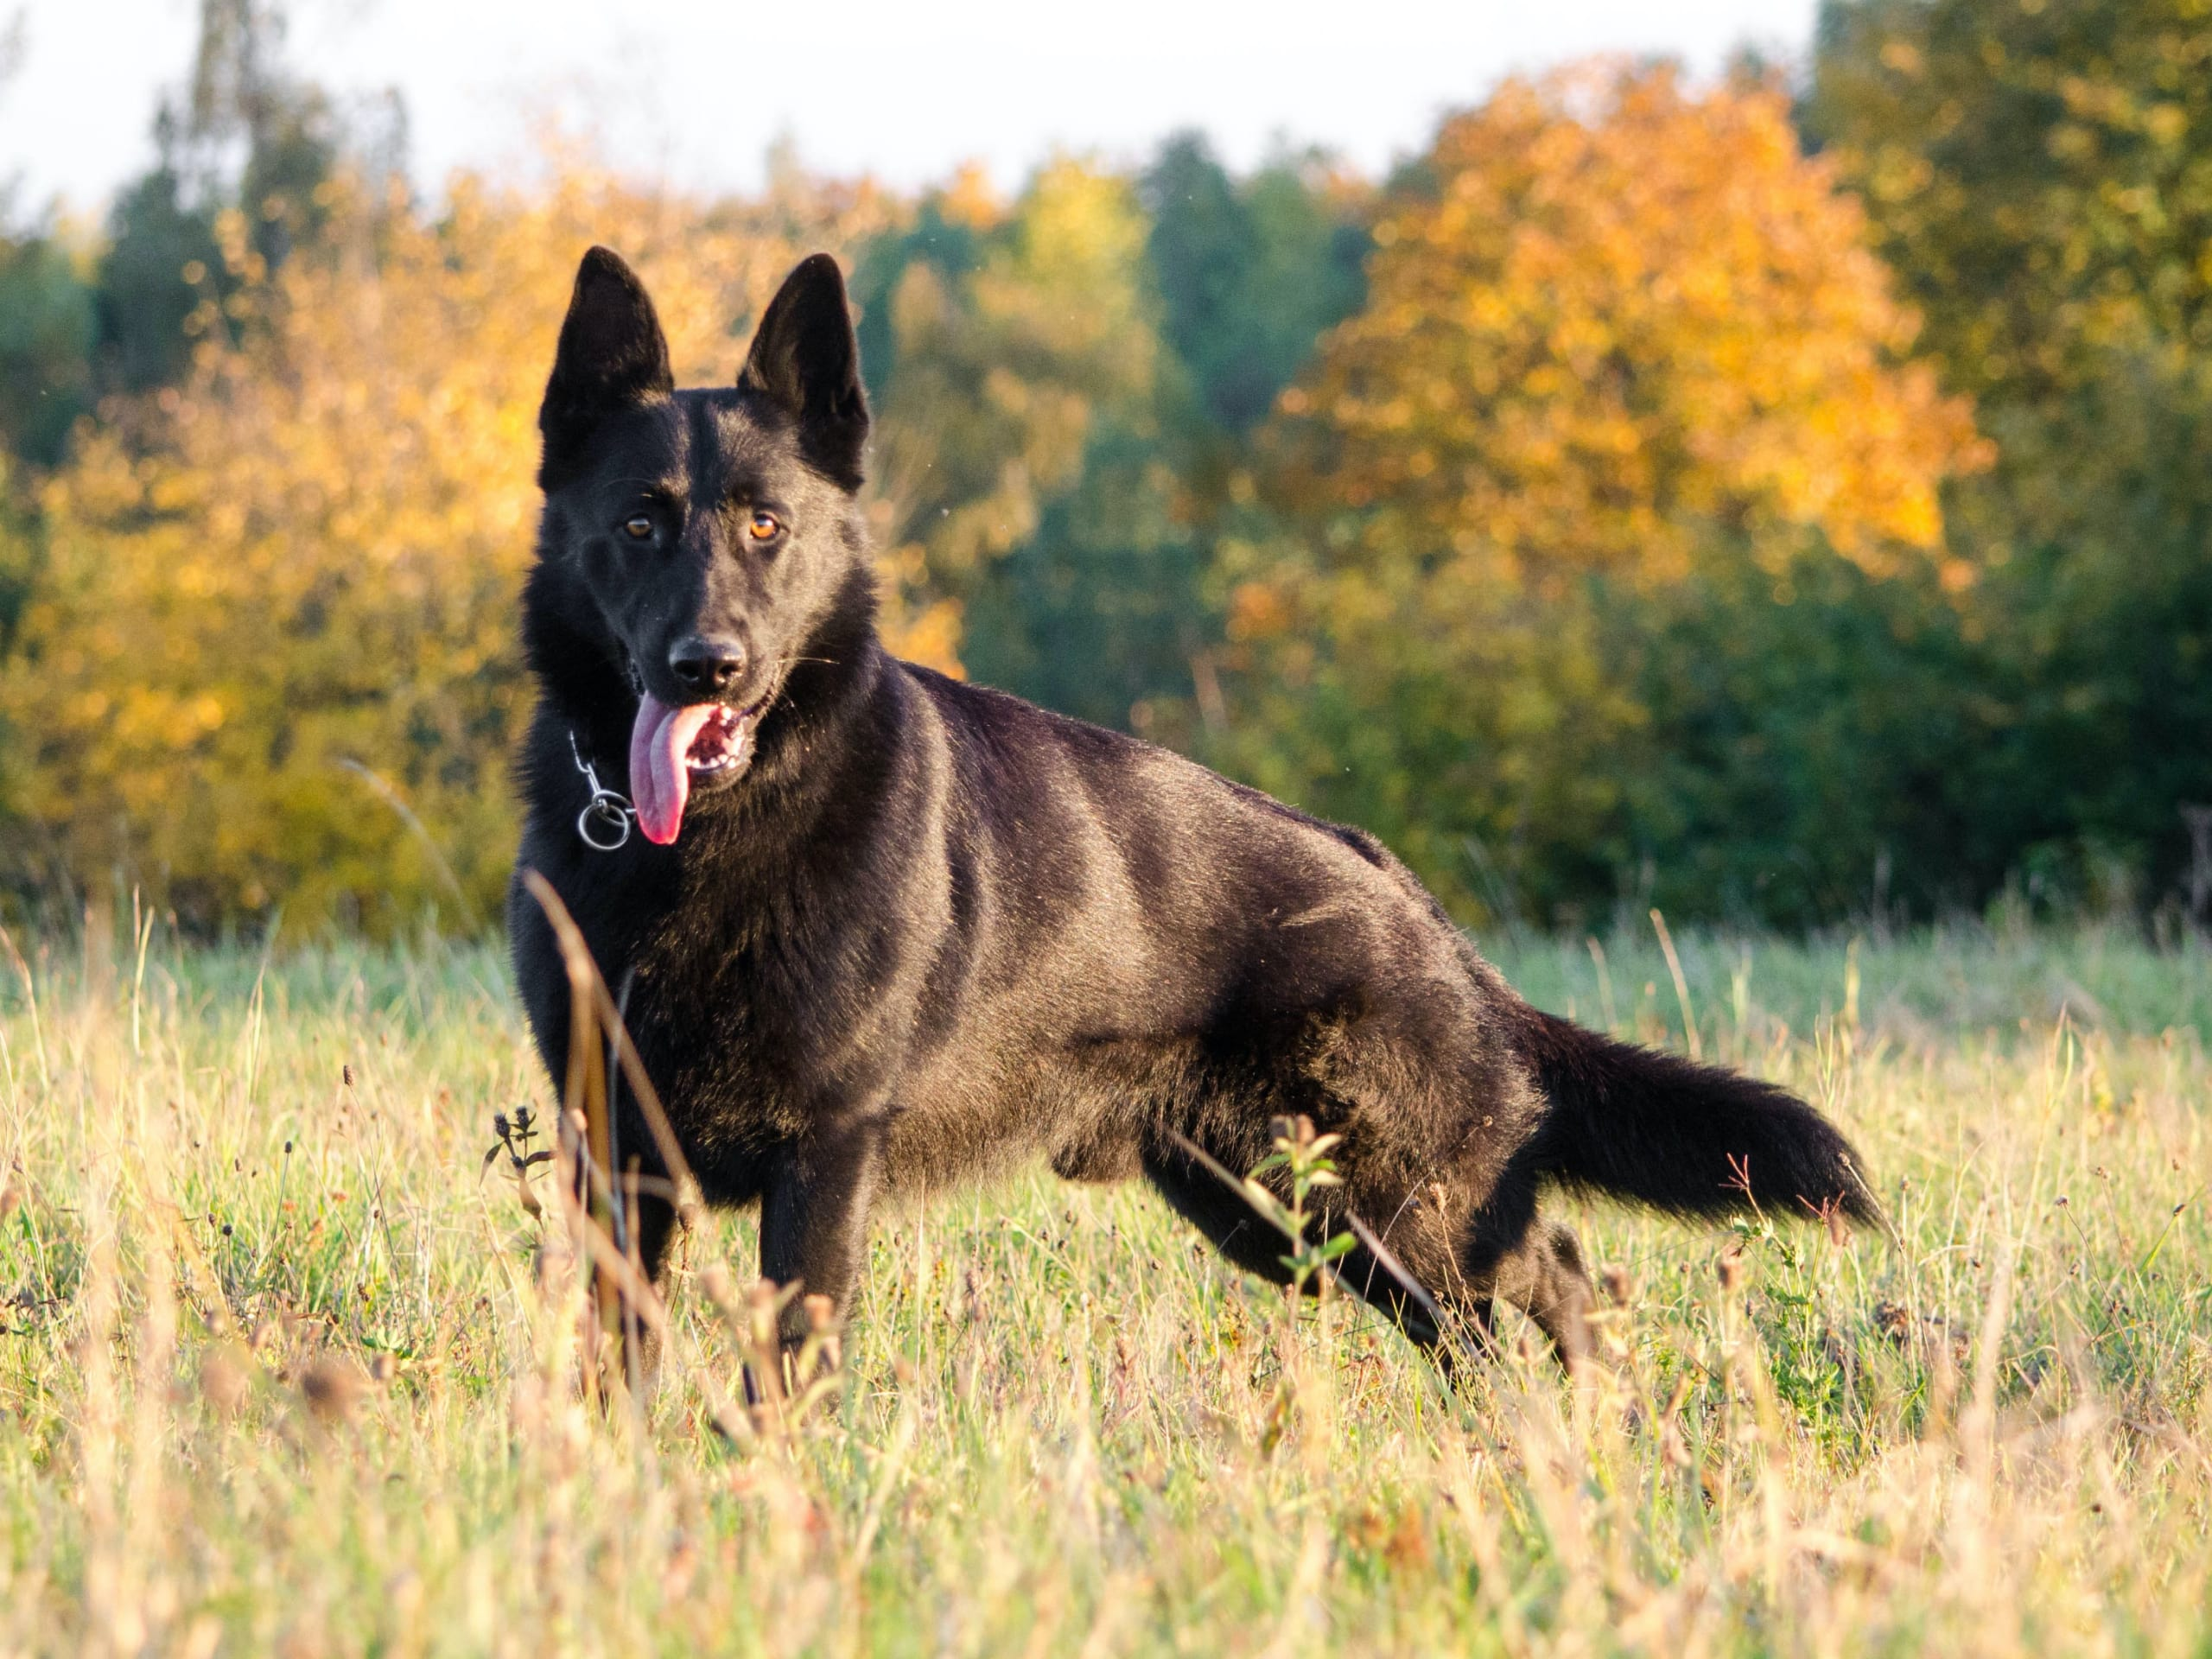 Beautiful dog in a field during autumn